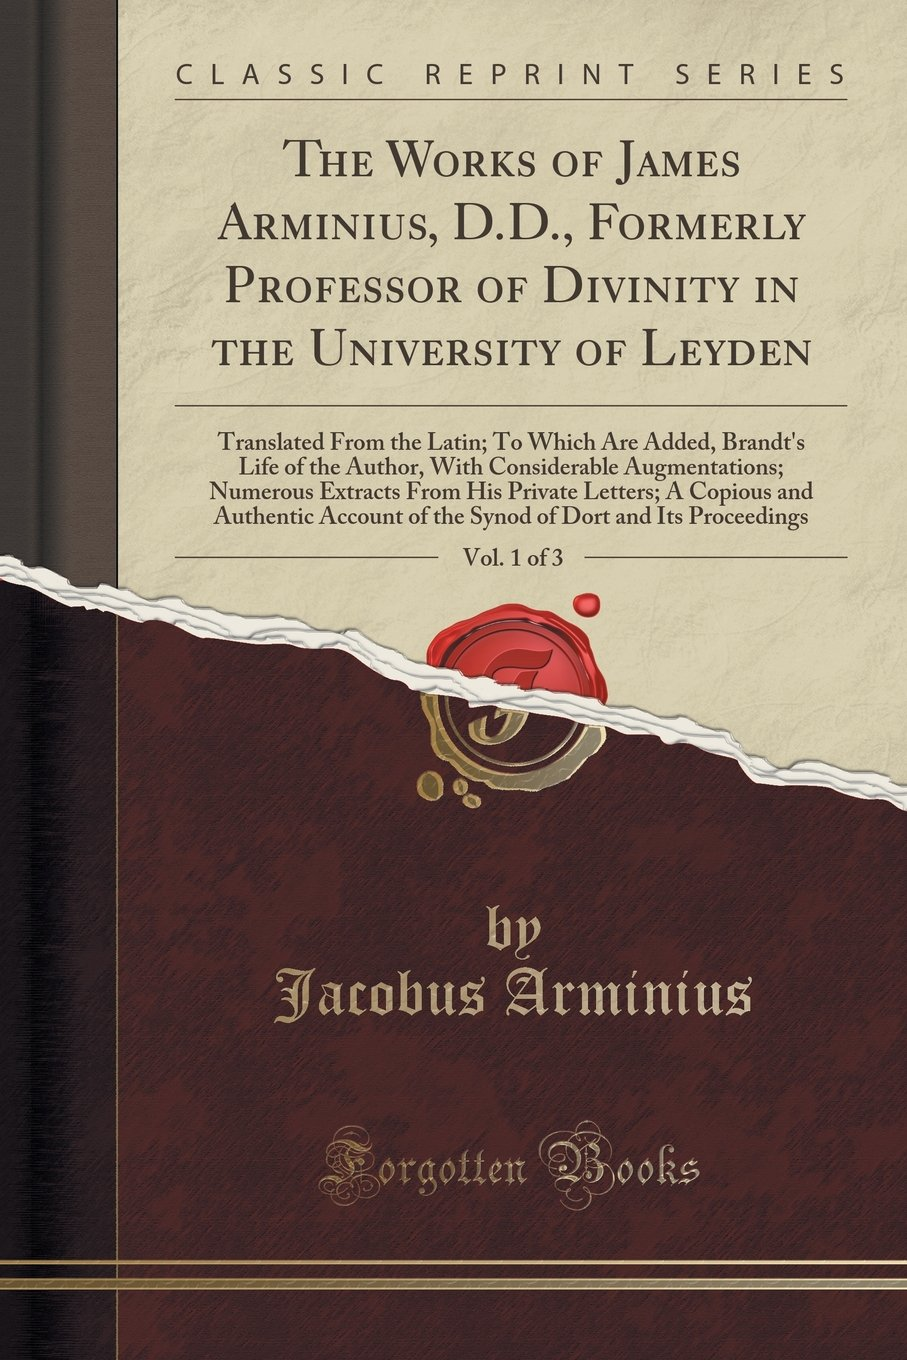 Download The Works of James Arminius, D.D., Formerly Professor of Divinity in the University of Leyden, Vol. 1 of 3: Translated From the Latin; To Which Are ... Numerous Extracts From His Private Let pdf epub